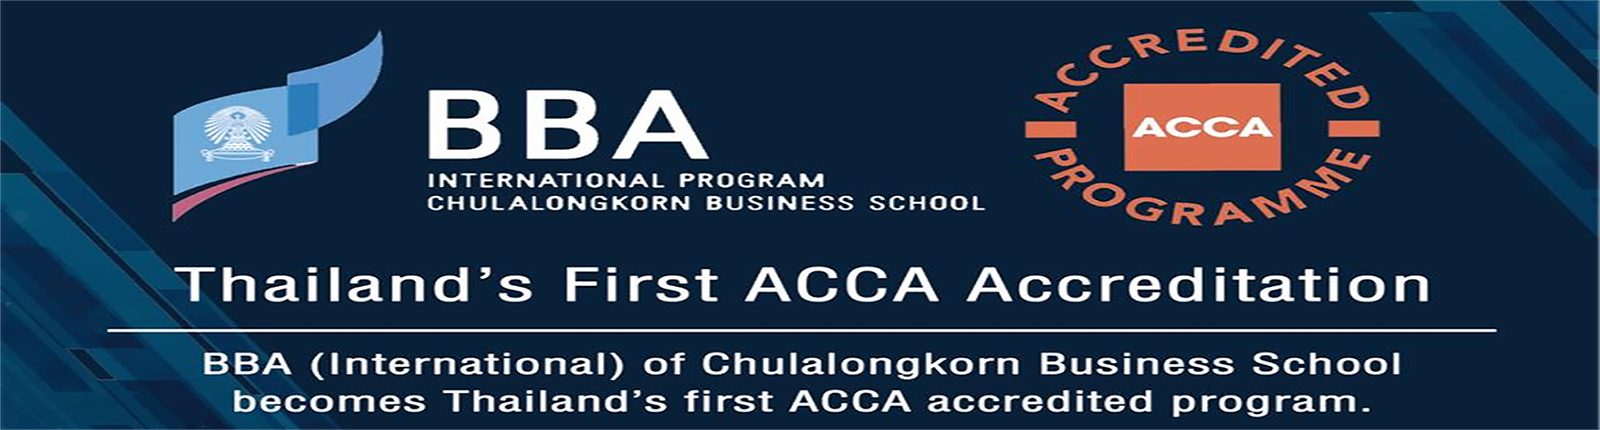 ACCA_1